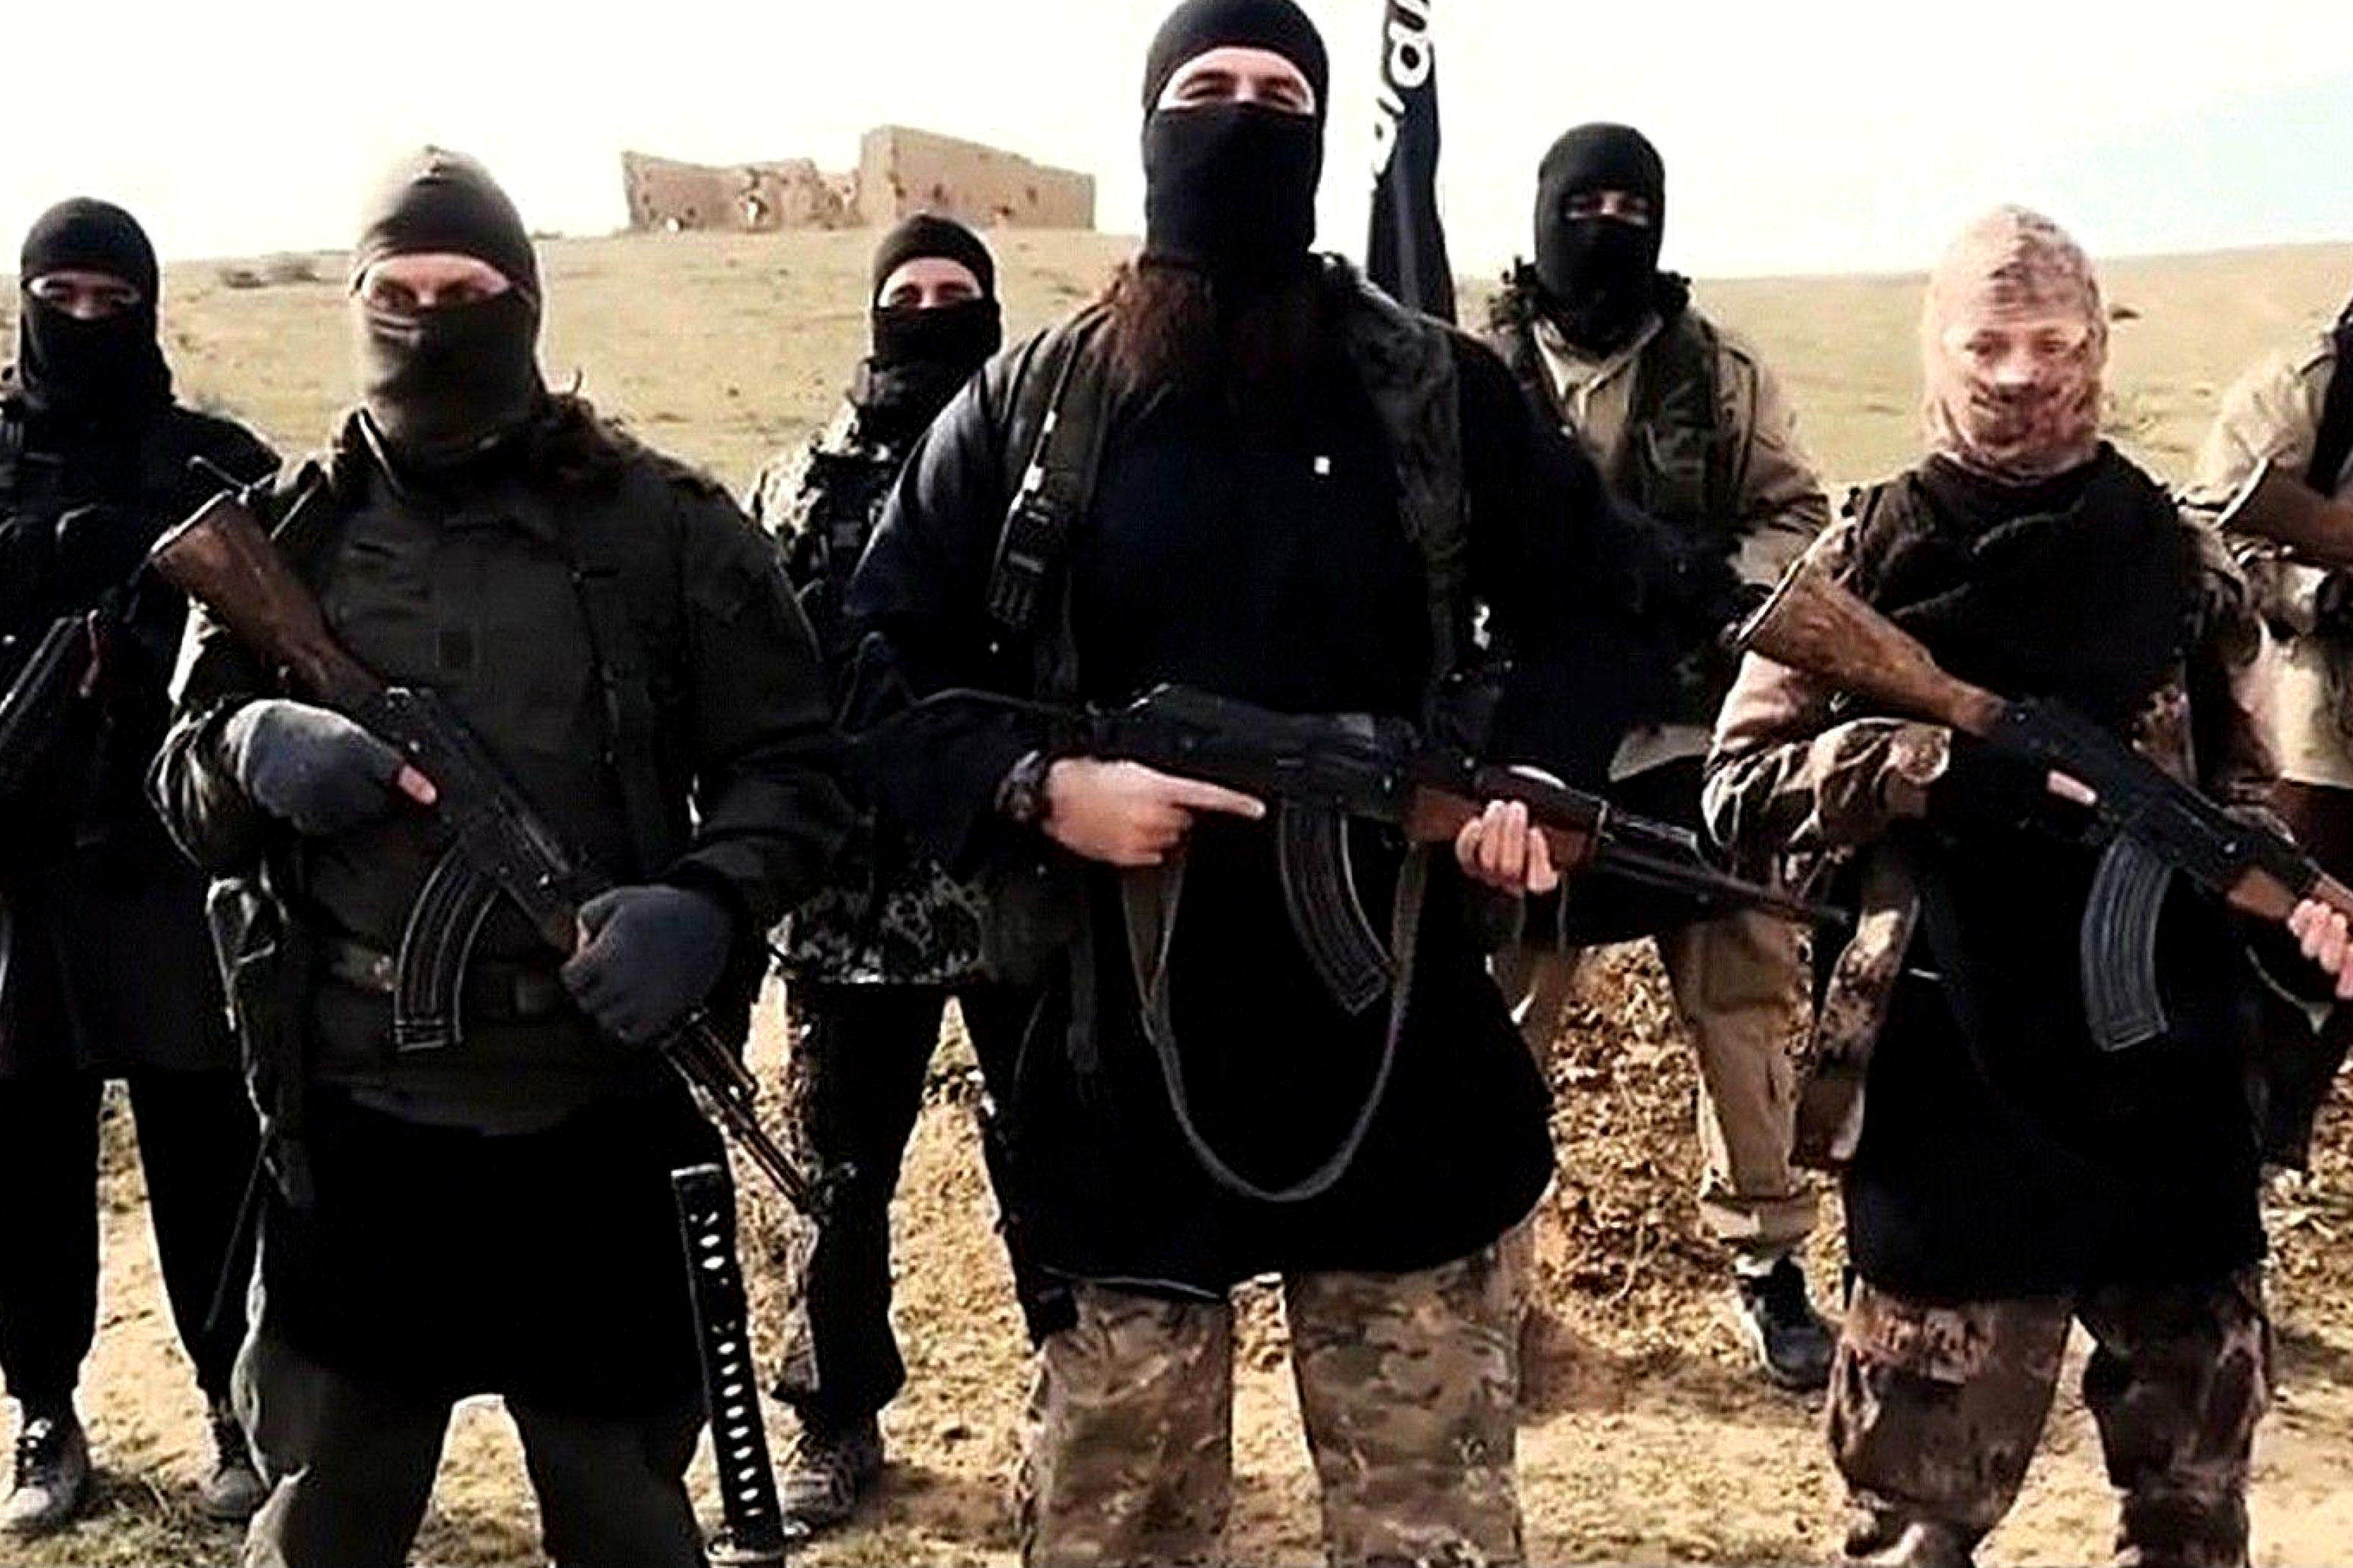 ISIS Document Leak Reportedly Reveals Personal Details About British Jihadis 2642870a1